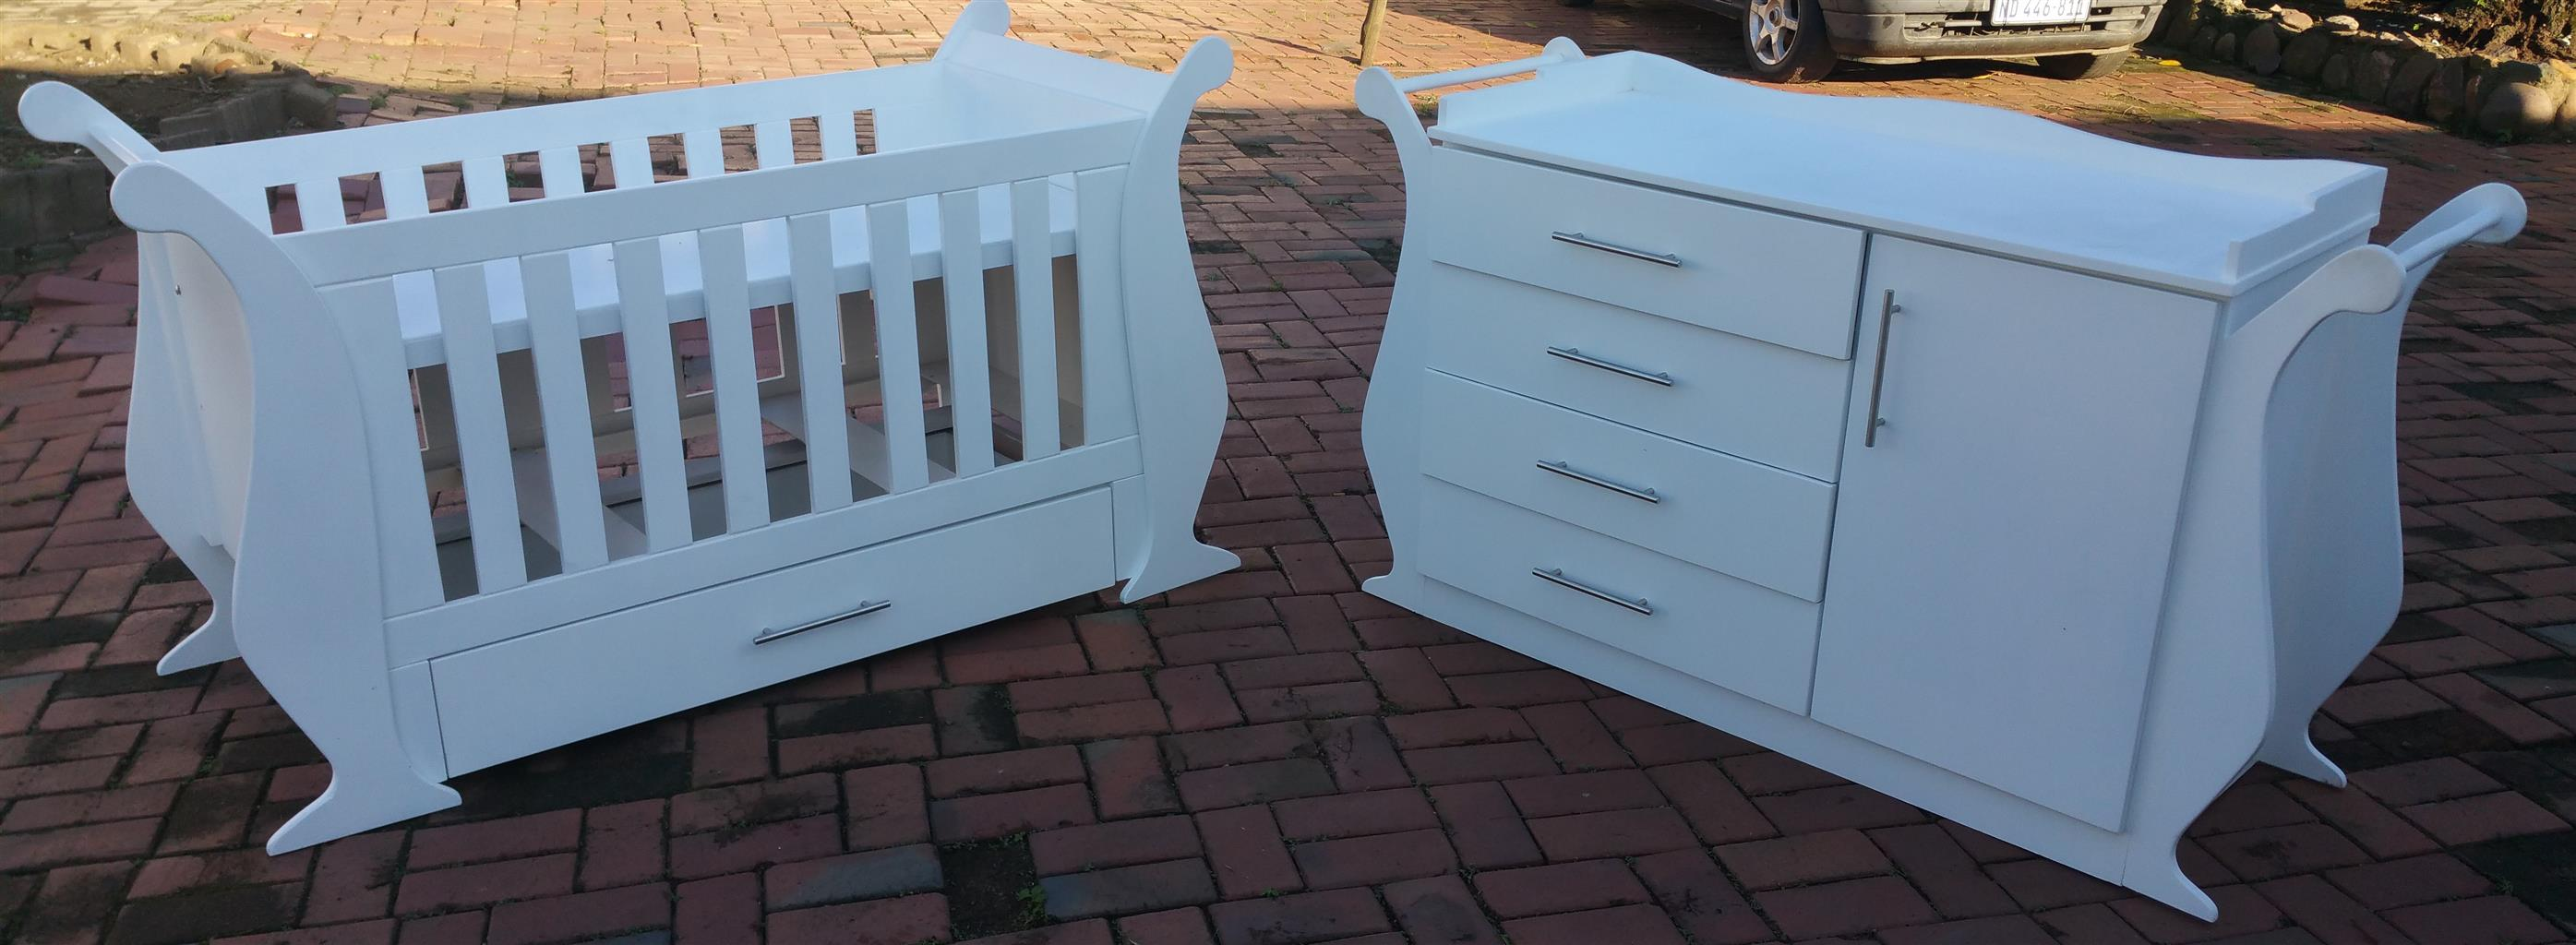 Petunia Baby Cot and Compactum-R 5499,00 for sale  Johannesburg - Sandton